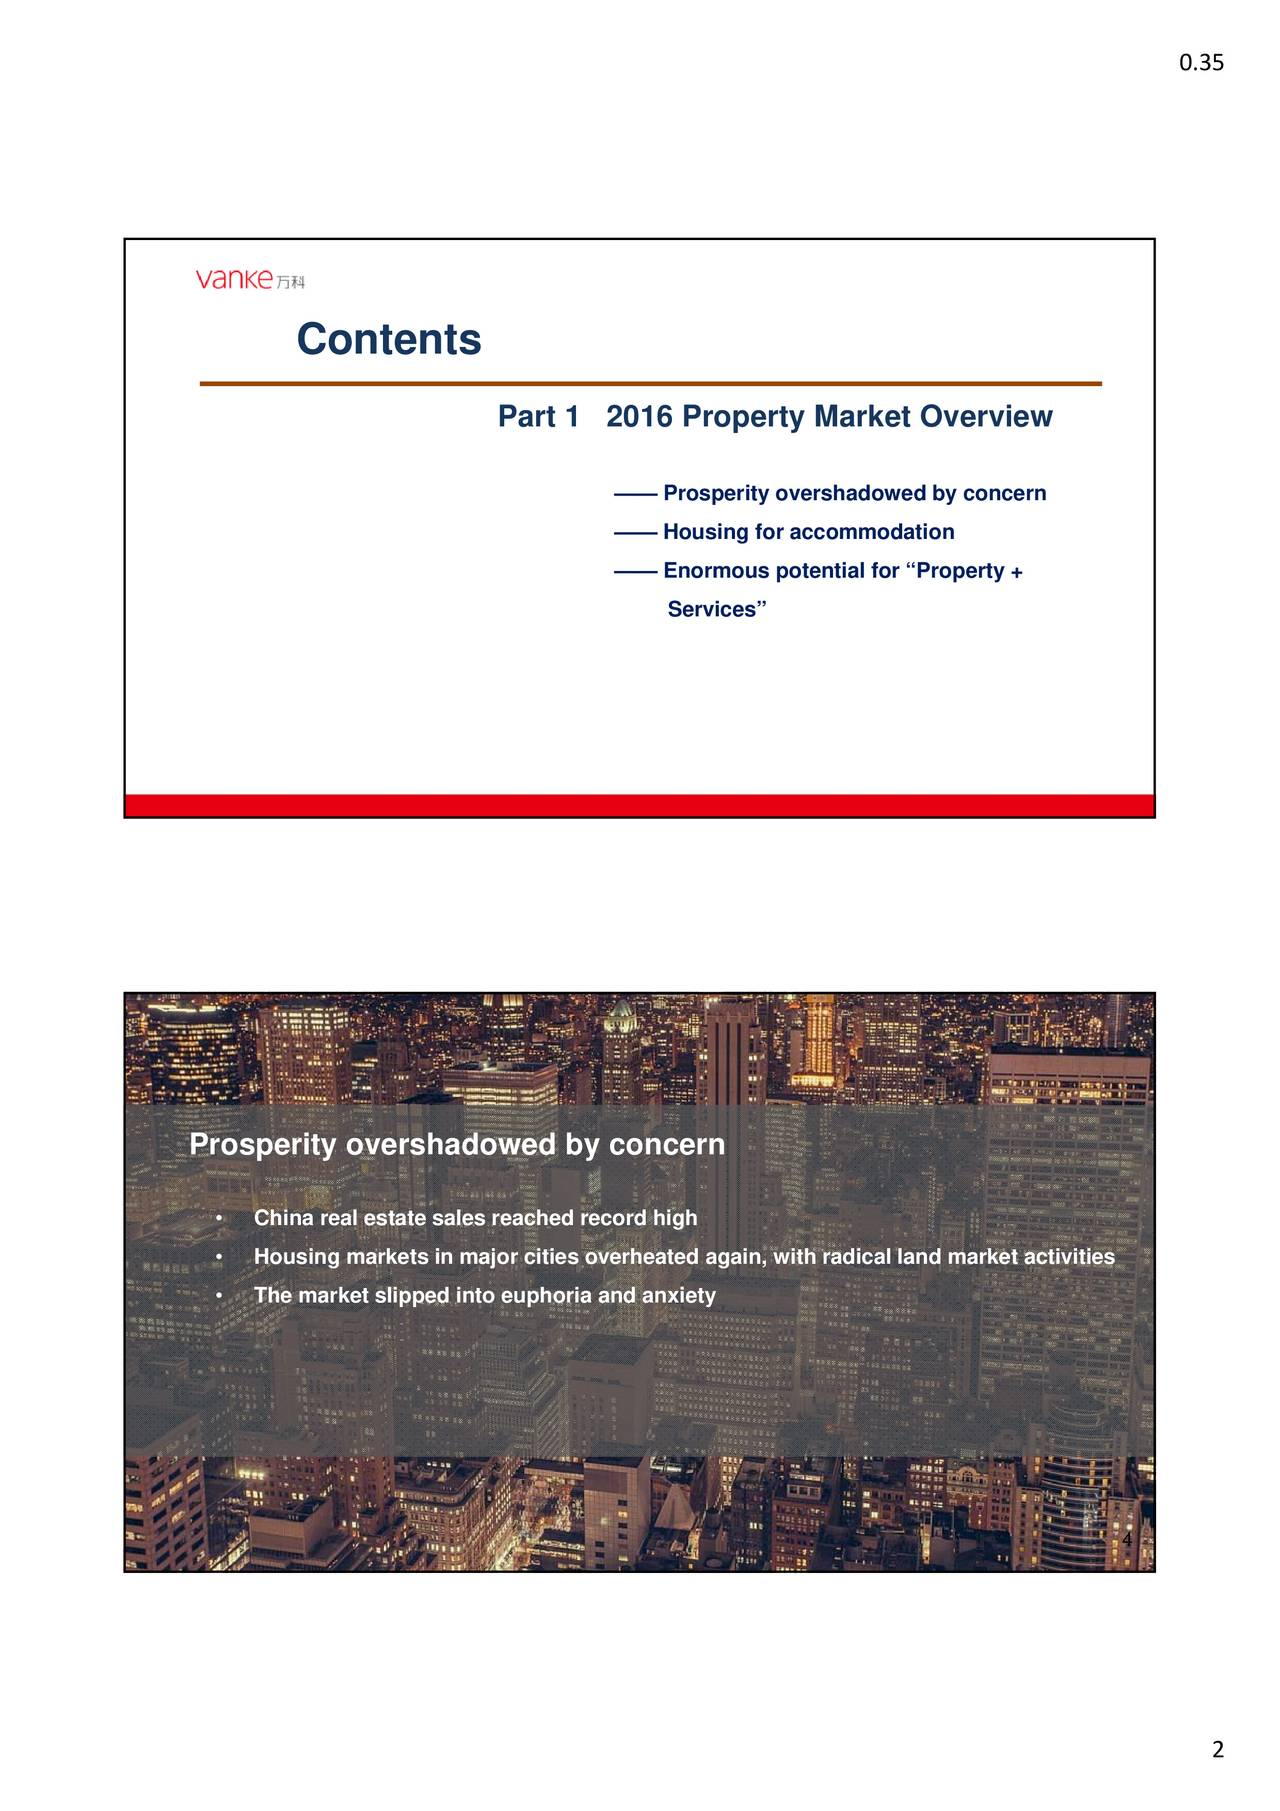 Contents Part 1 2016 Property Market Overview Prosperity overshadowed by concern Housing for accommodation Enormous potential for Property + Services Prosperity overshadowed by concern China real estate sales reached record high Housing markets in major cities overheated again, with radical land market activities The market slipped into euphoria and anxiety 4 2